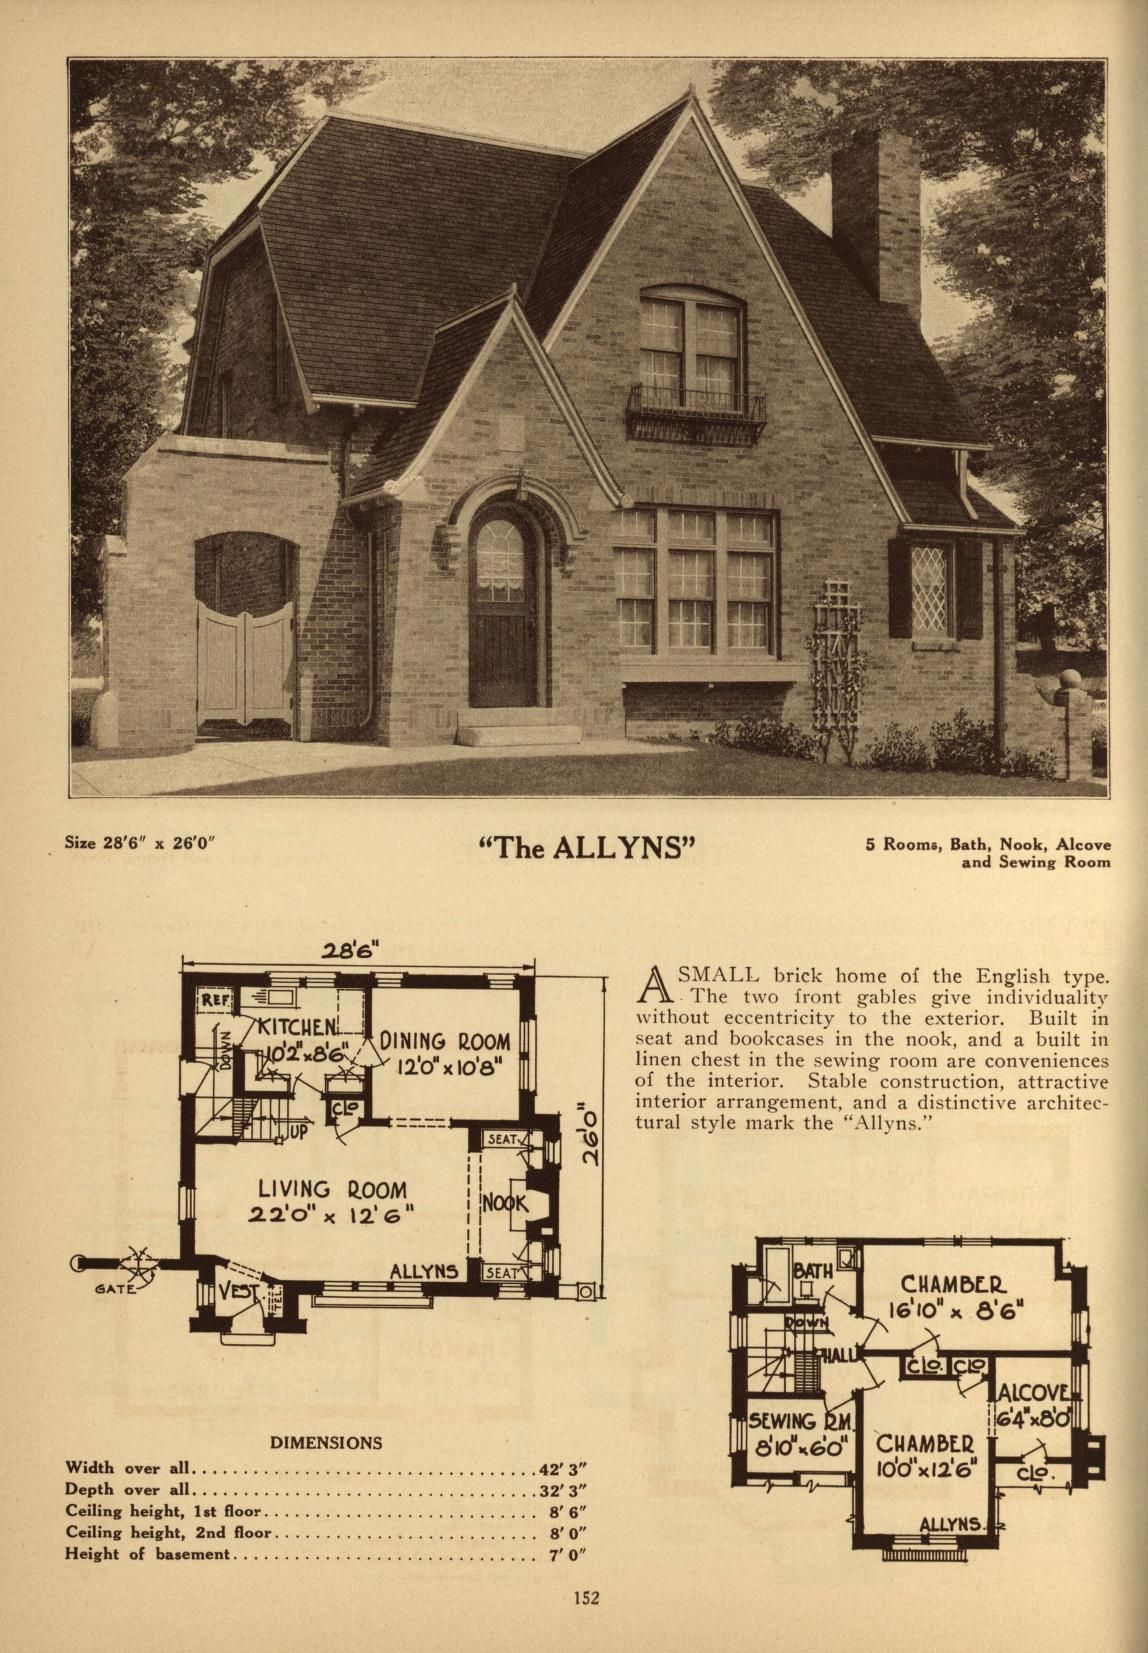 Deyo S Book Of Homes Vintage House Plans Tudor Style Homes Mountain House Plans